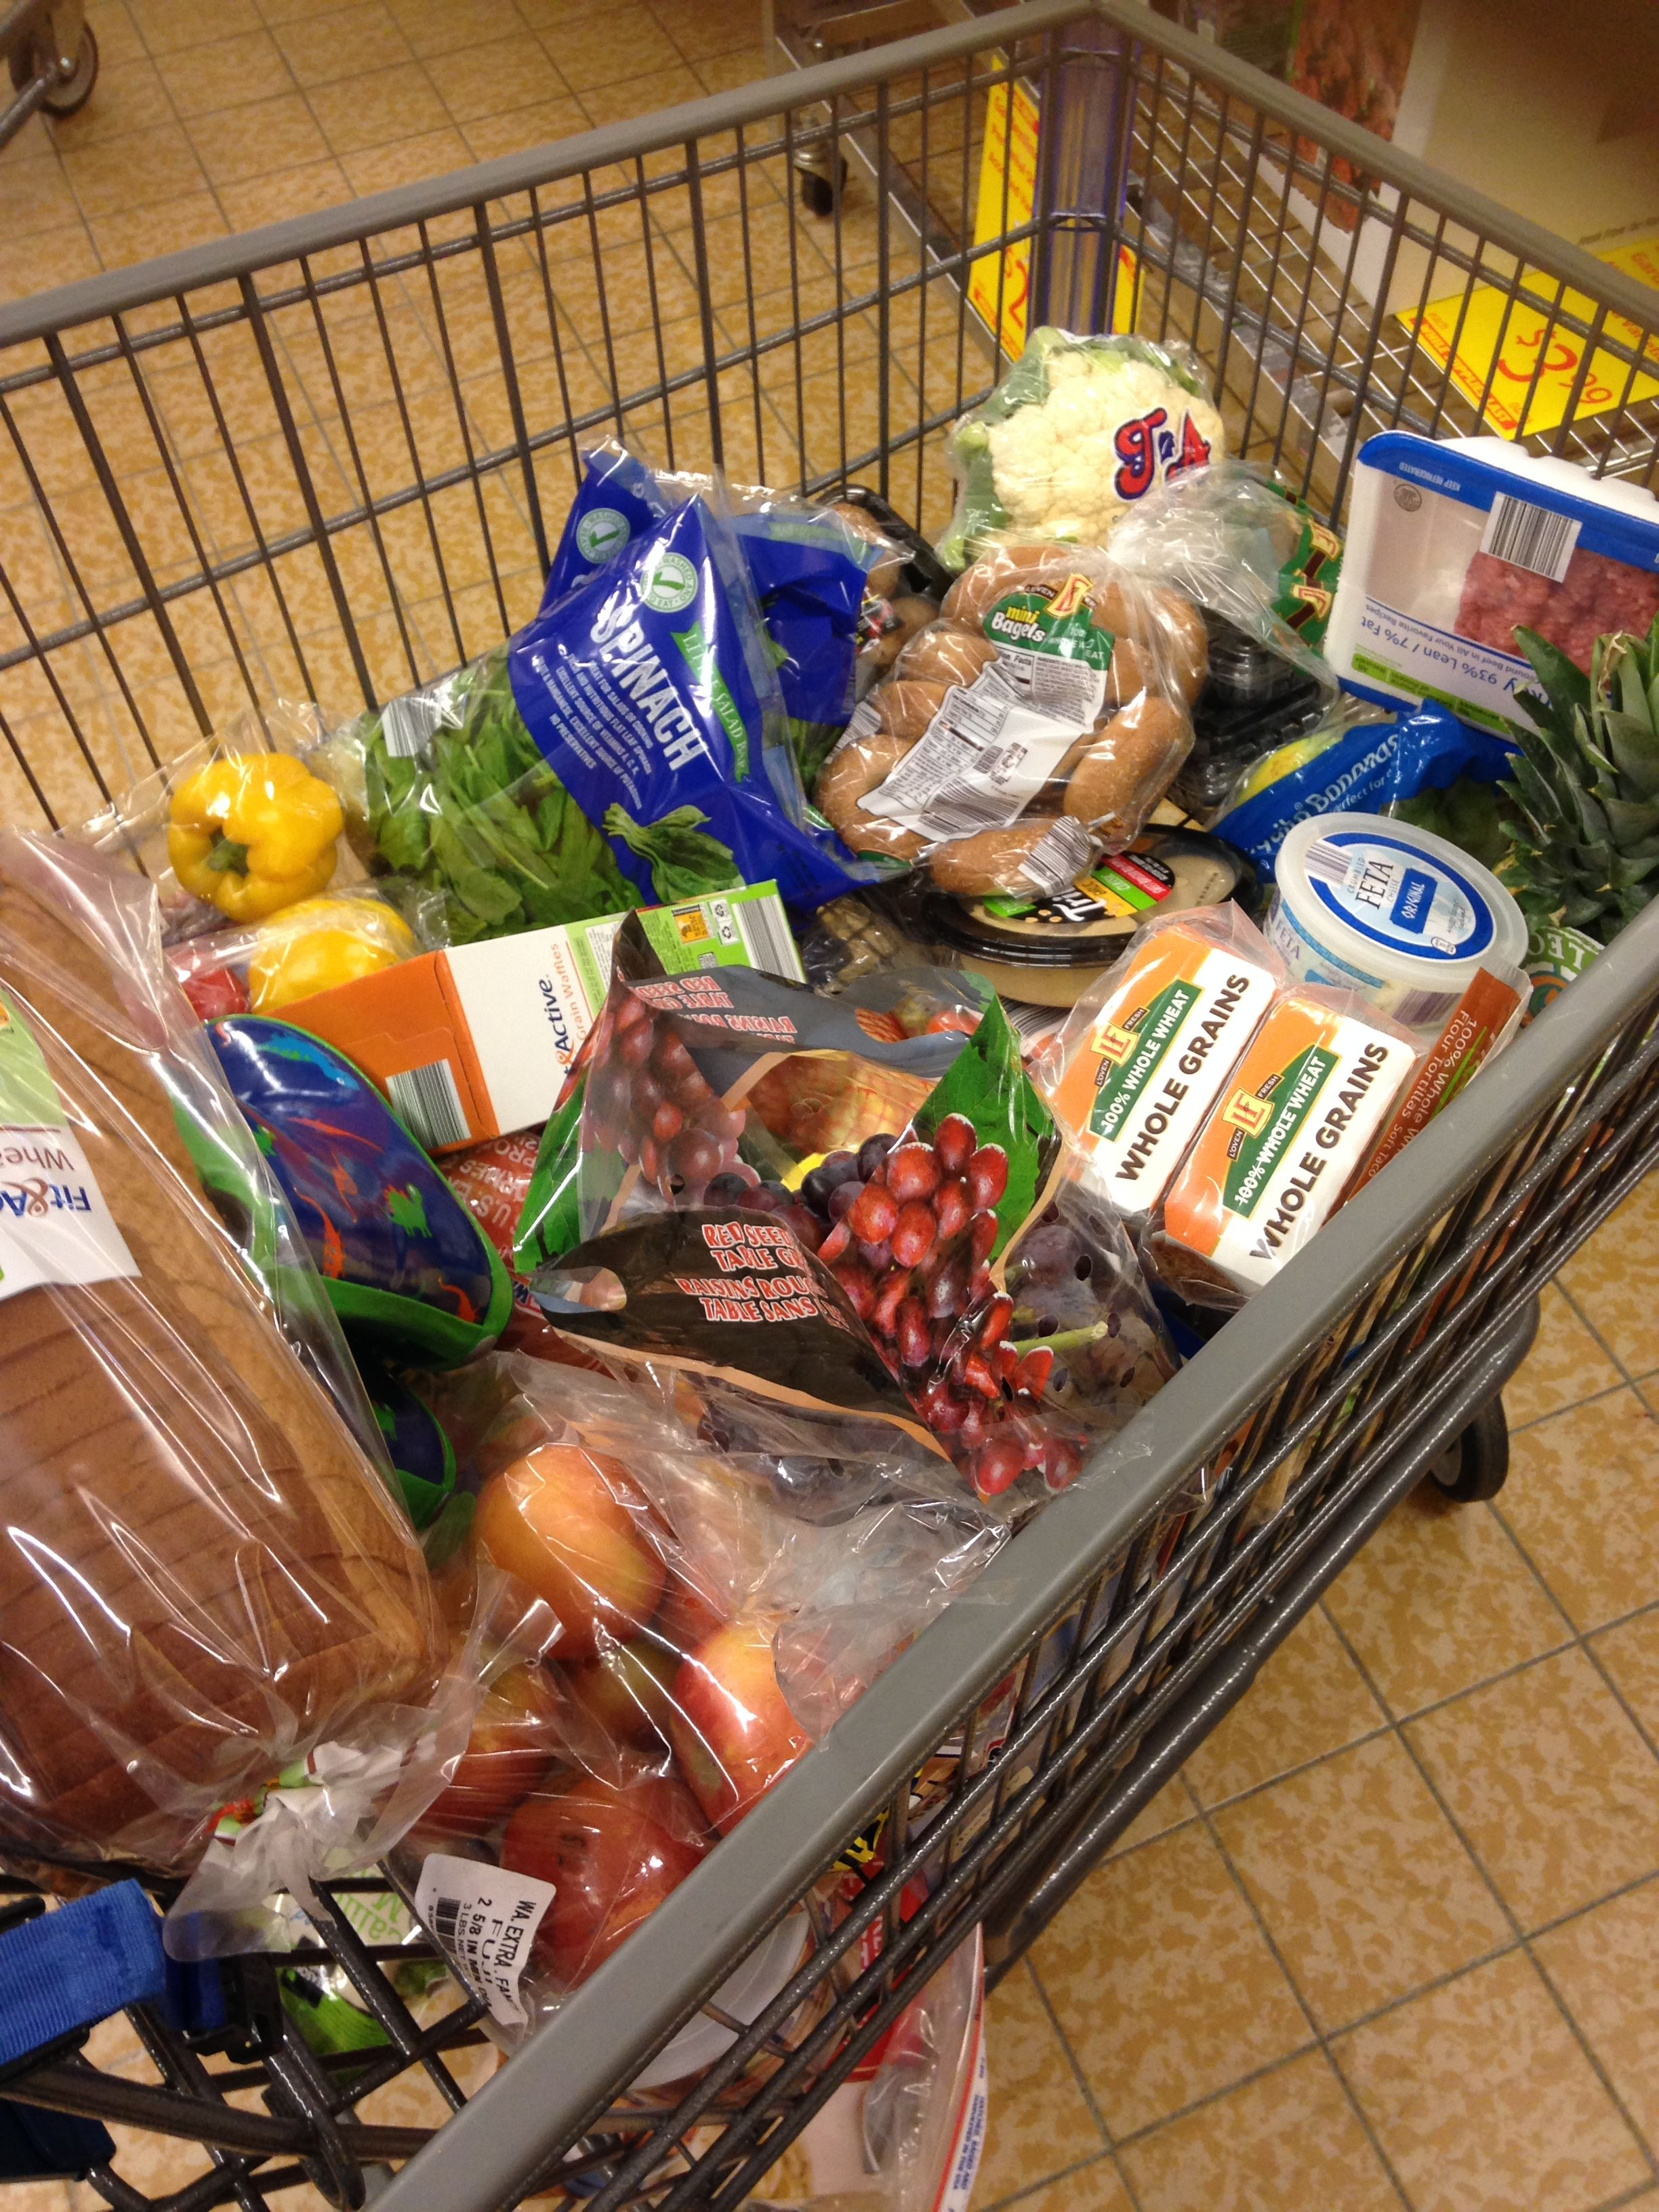 LOVE me some Aldi and ALONE TIME at the grocery store!!  TIPS FOR SAVING MONEY: *shop at Aldi! (don't forget your quarter for your cart!) *avoid inner aisles of the grocery store unless it's for necessities(spices, oats, etc) *fruits/veggies on sale??? stock up and freeze some for smoothies! (smoothies are a fun, easy way to get your fruits/veggies in!!)   (follow me on facebook: Staci Carroll- Inspiration & Fitness)